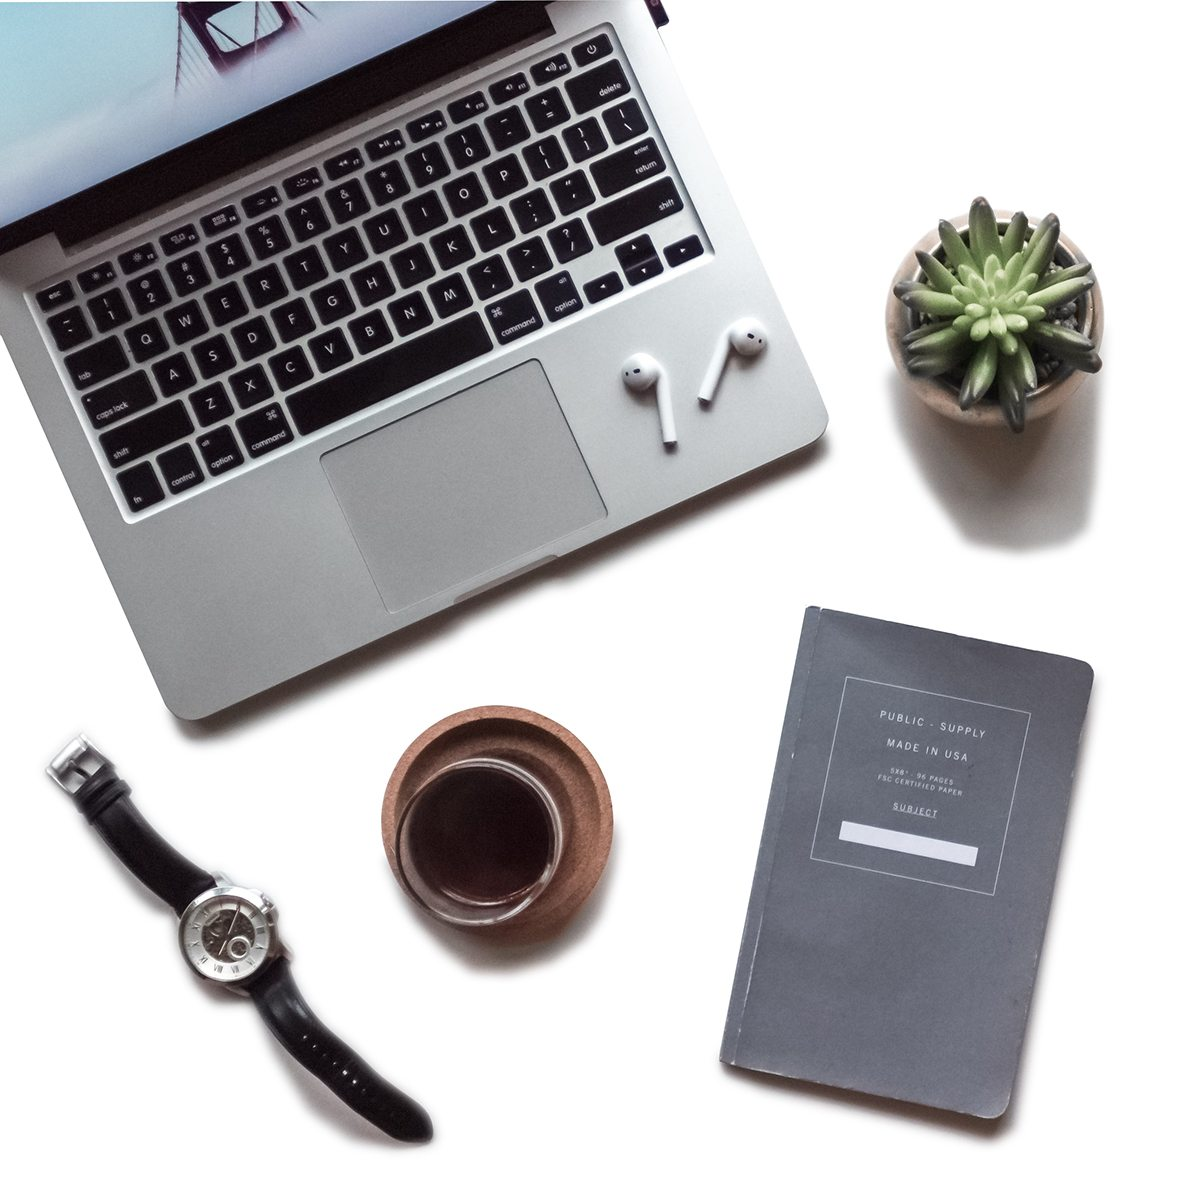 White desk with a watch, cup of coffee, cactus plant, laptop and notebook featured